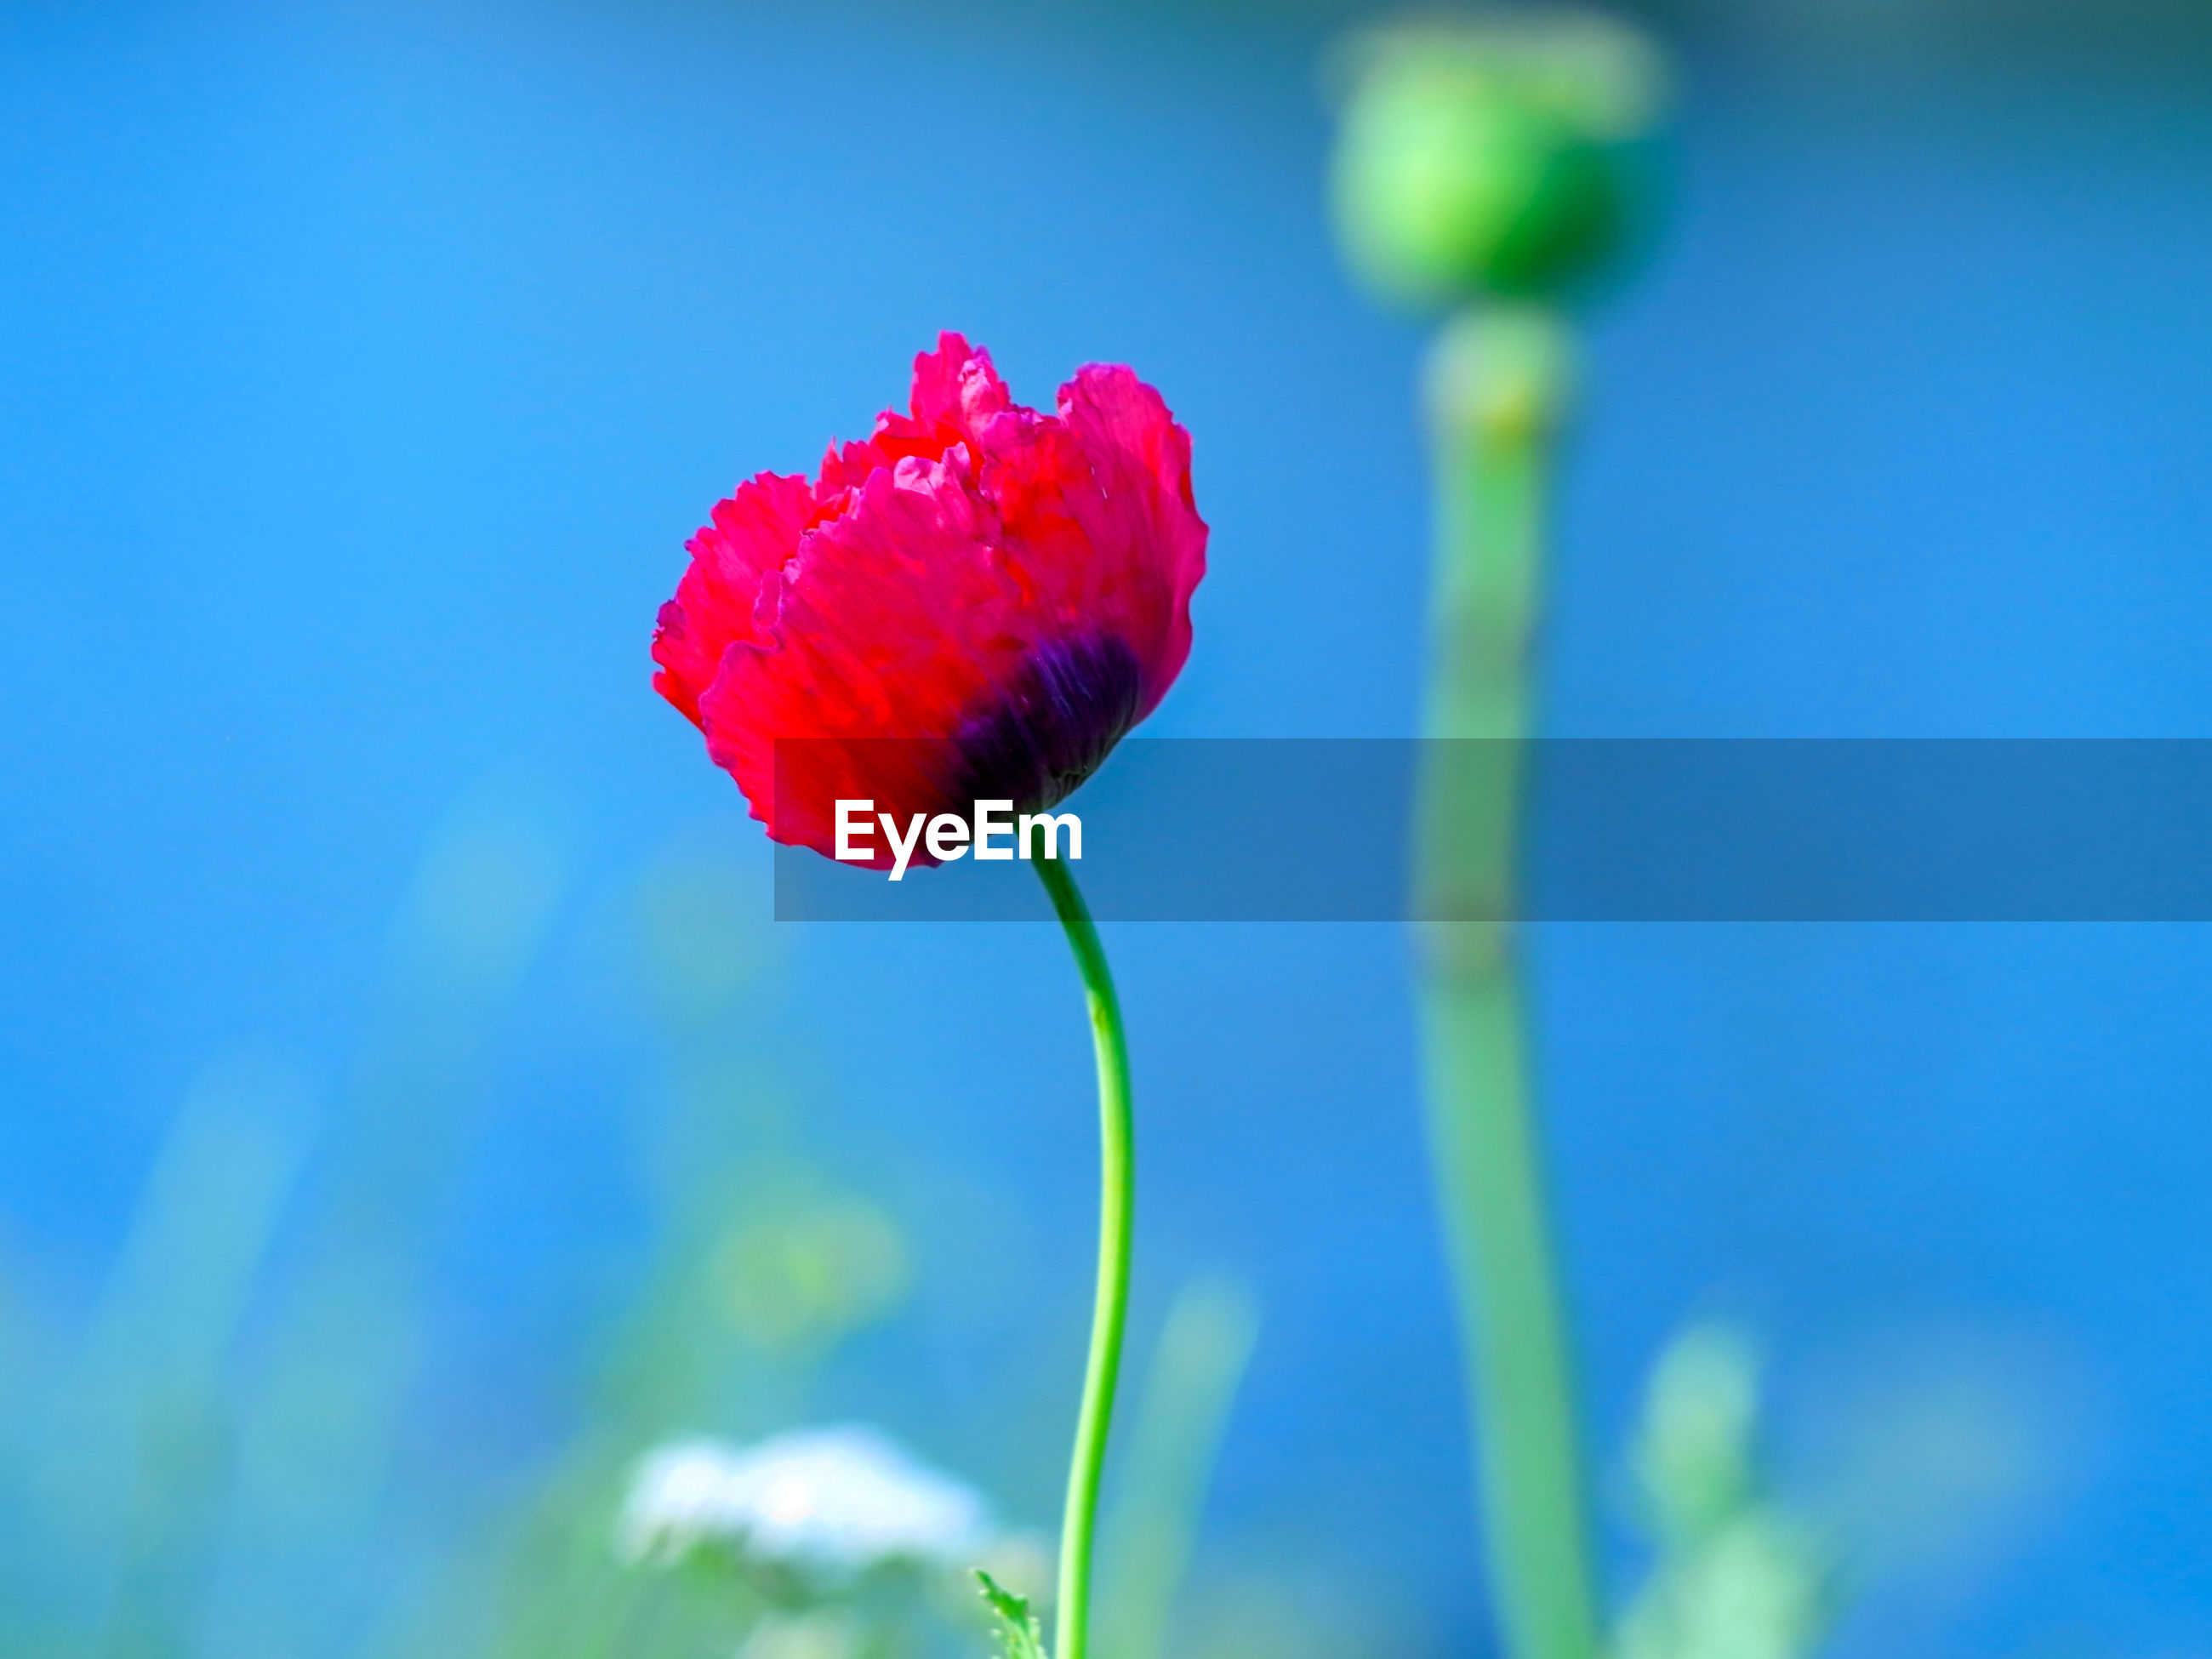 CLOSE-UP OF RED ROSE FLOWER AGAINST BLUE SKY